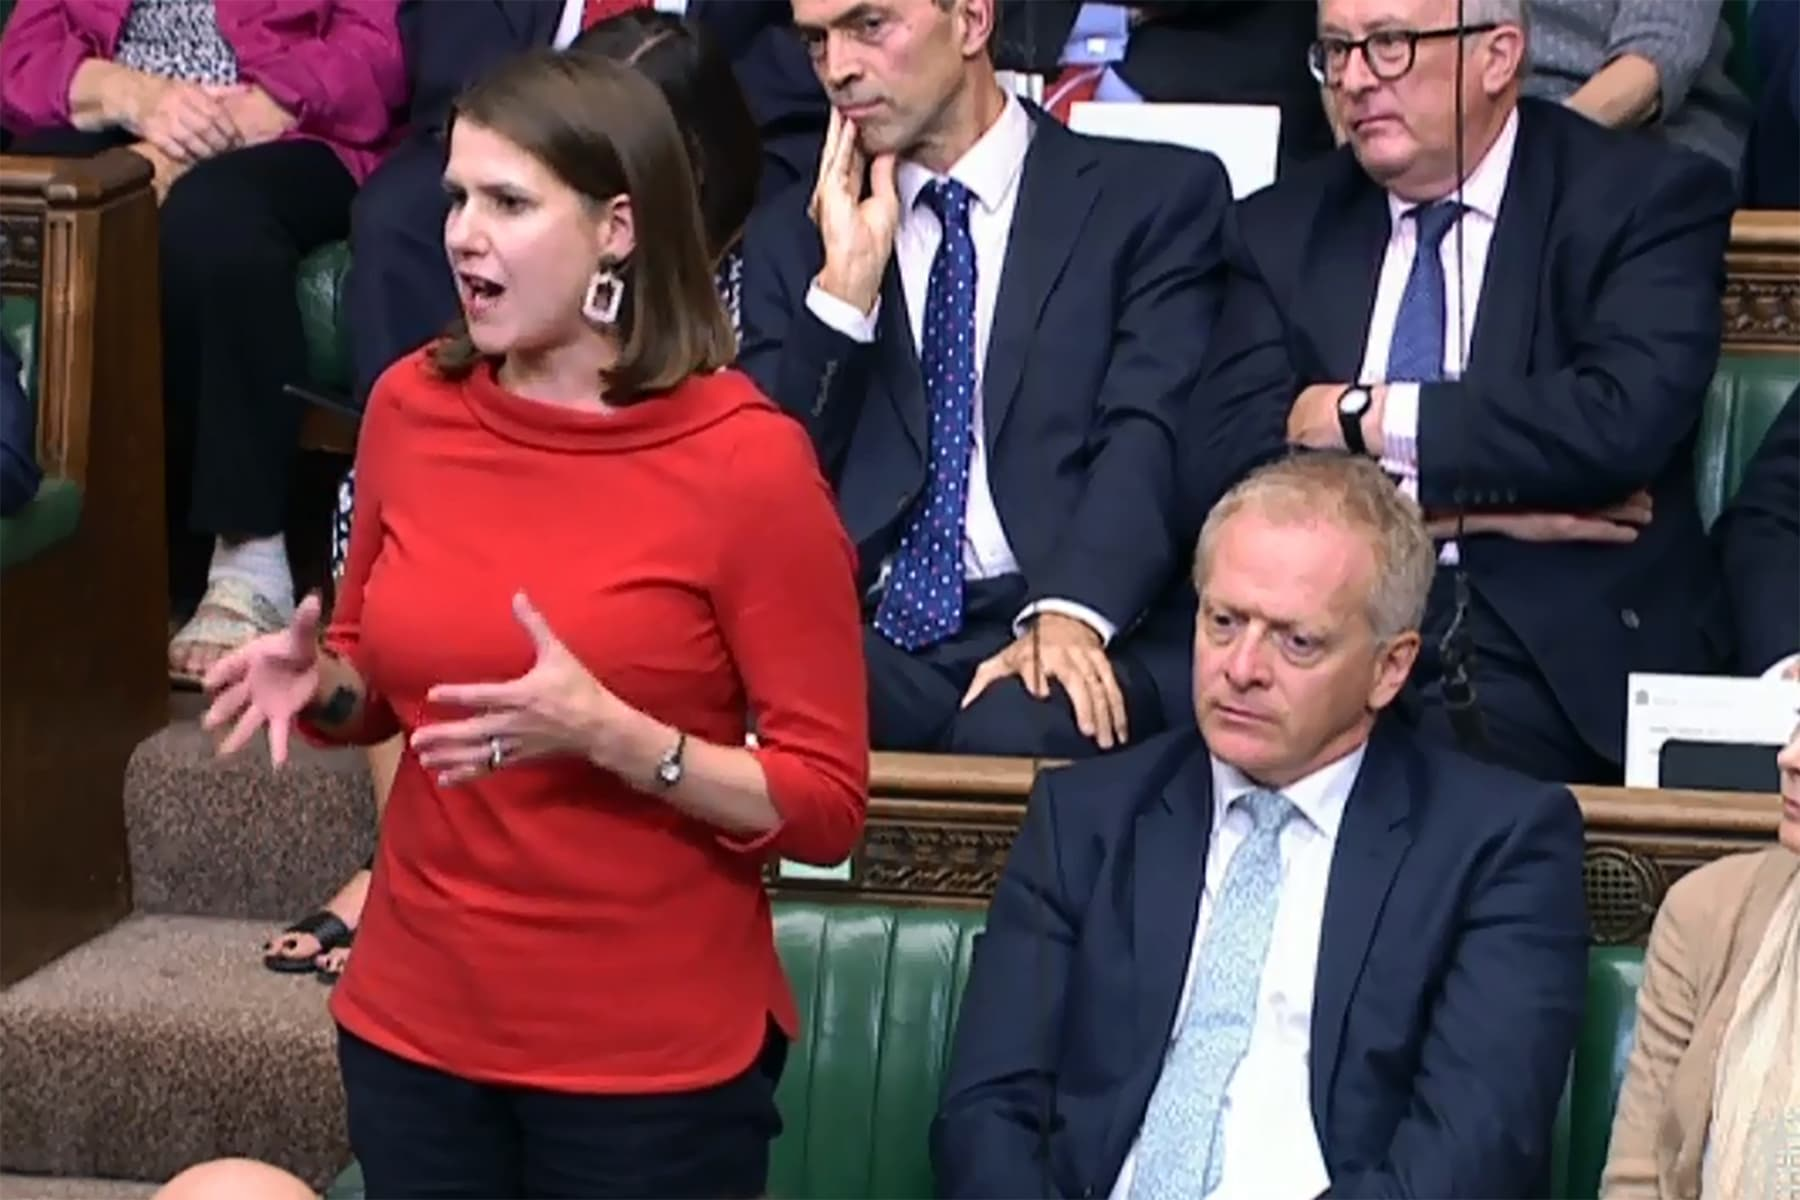 A video grab from footage broadcast by the UK Parliament's Parliamentary Recording Unit (PRU) shows former Conservative MP Phillip Lee (R) sitting next to Leader of the Liberal Democrats Jo Swinson (L) in the House of Commons in London on Tuesday. — AFP